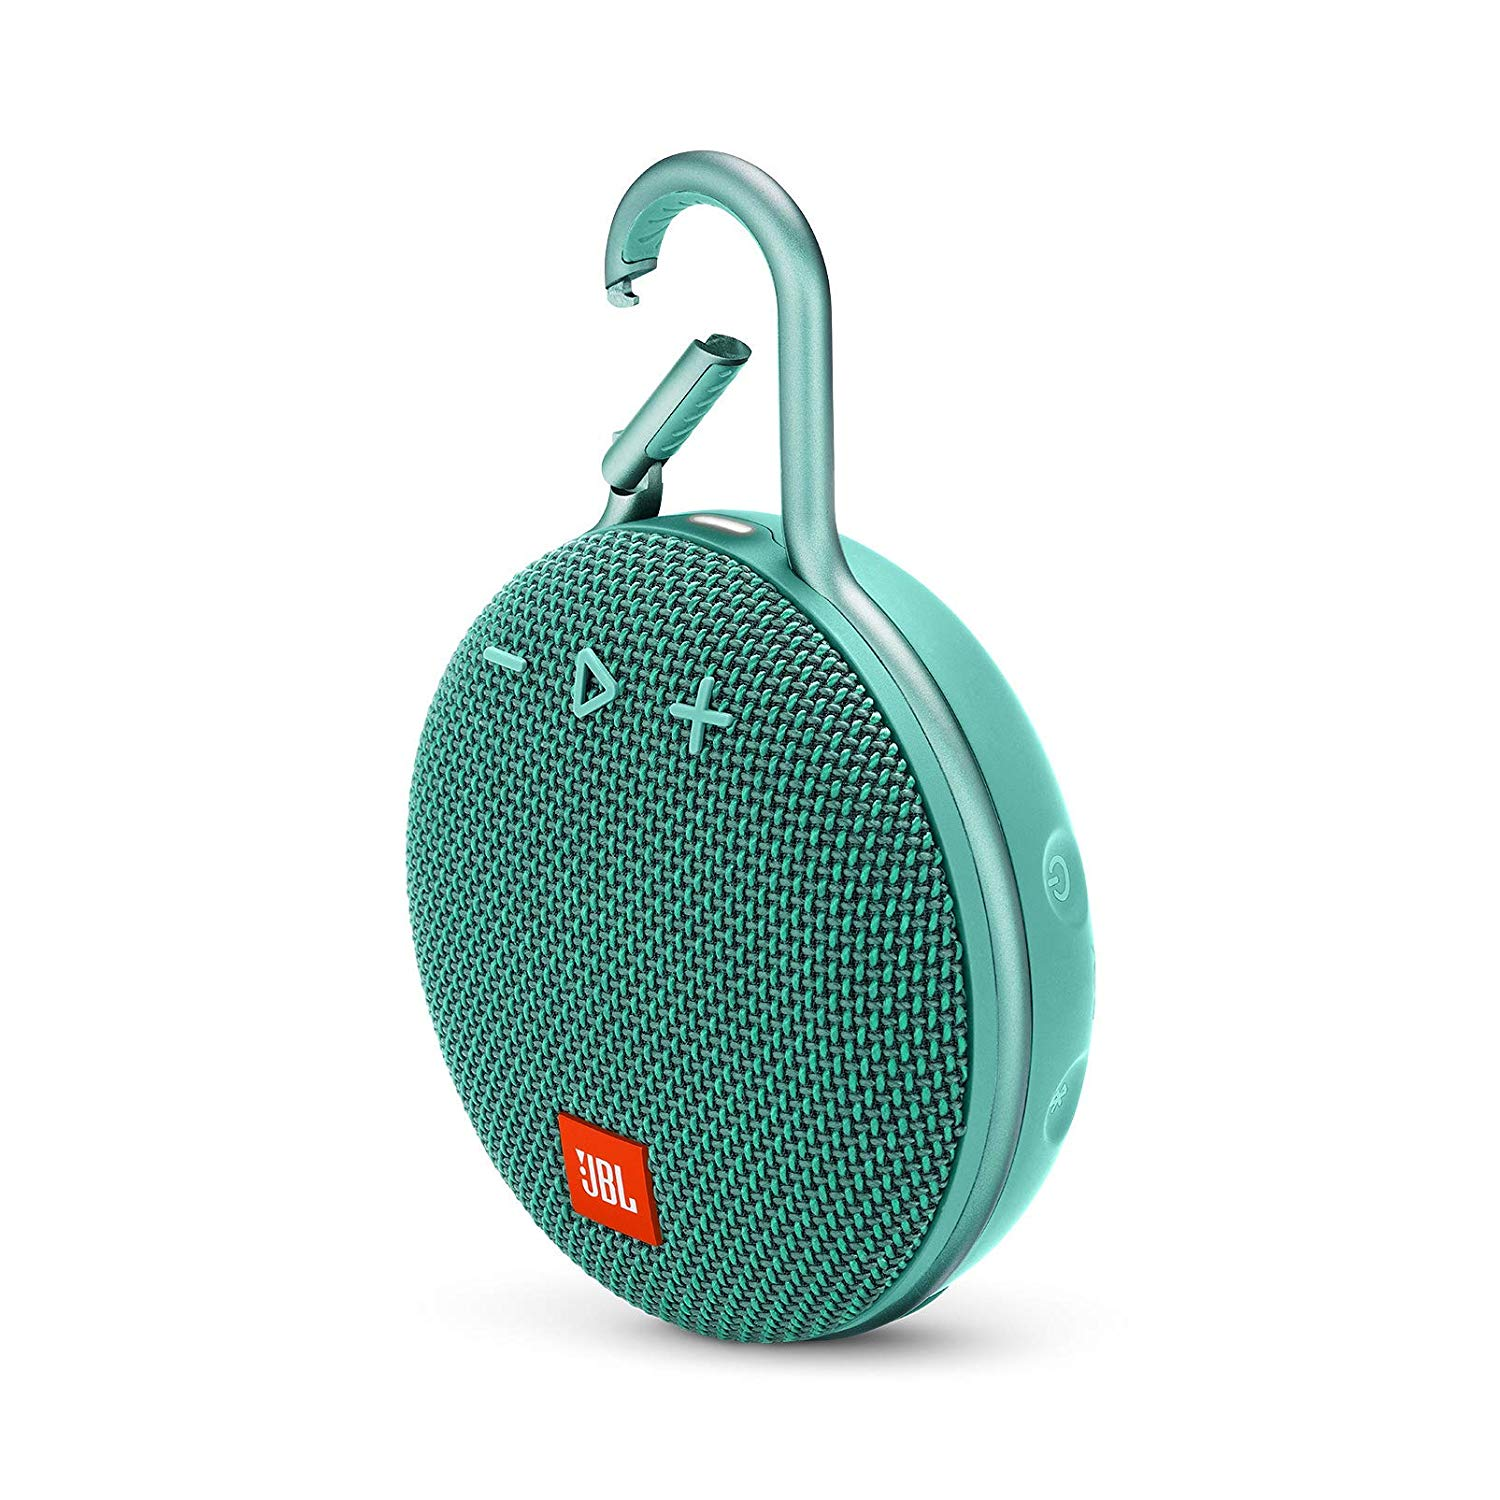 JBL Clip 3 Portable Waterproof Wireless Bluetooth Speaker - Teal - CLIP3-TEAL